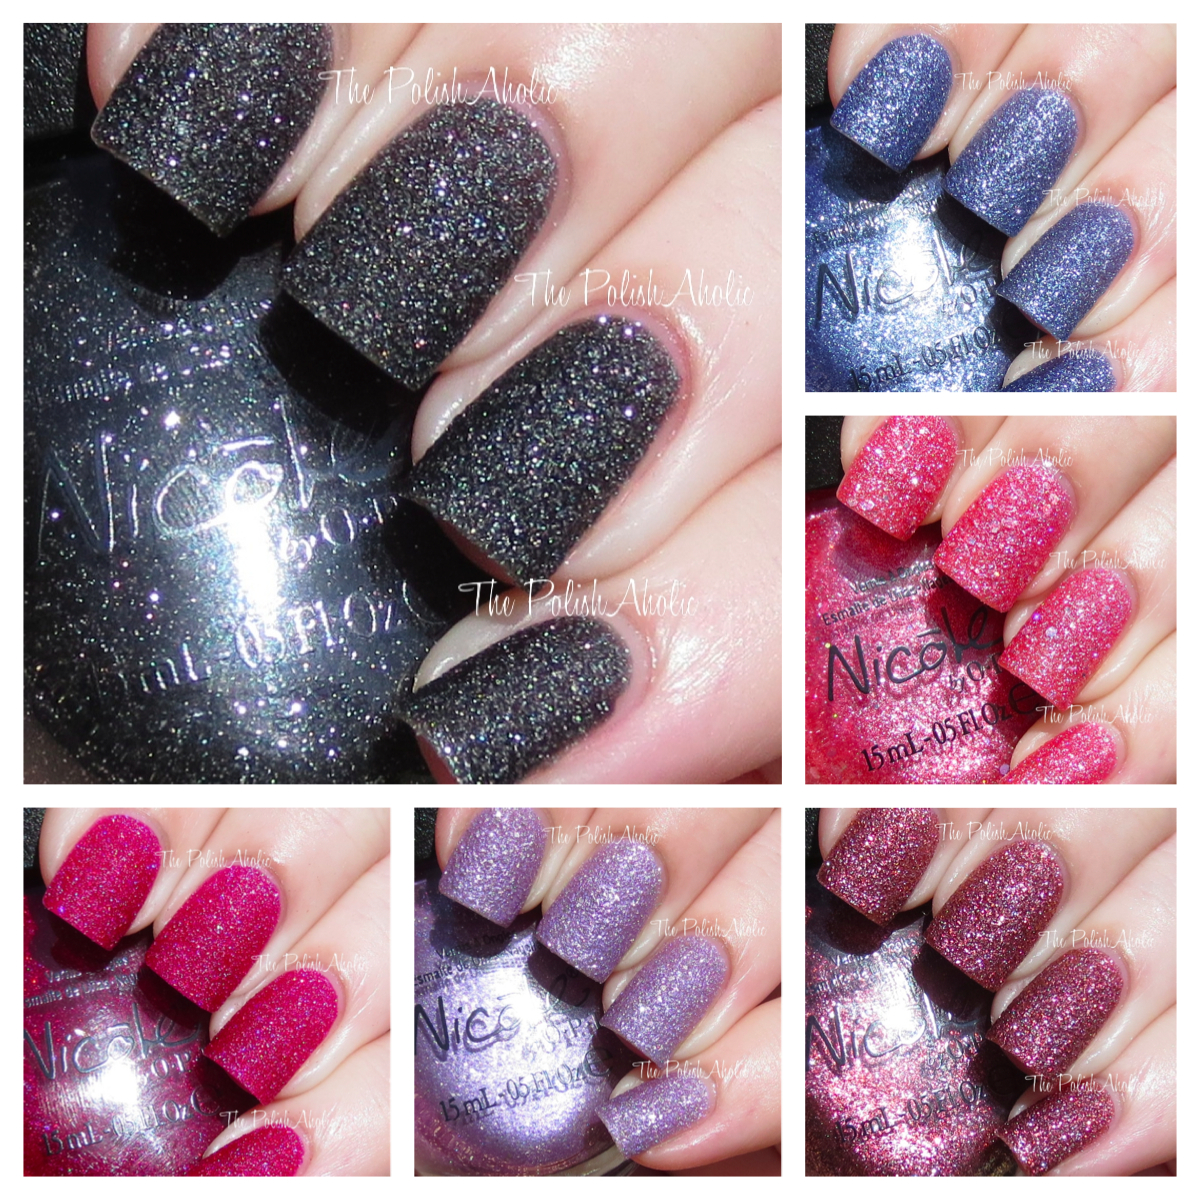 The PolishAholic: Nicole by OPI Gumdrops Collection Swatches